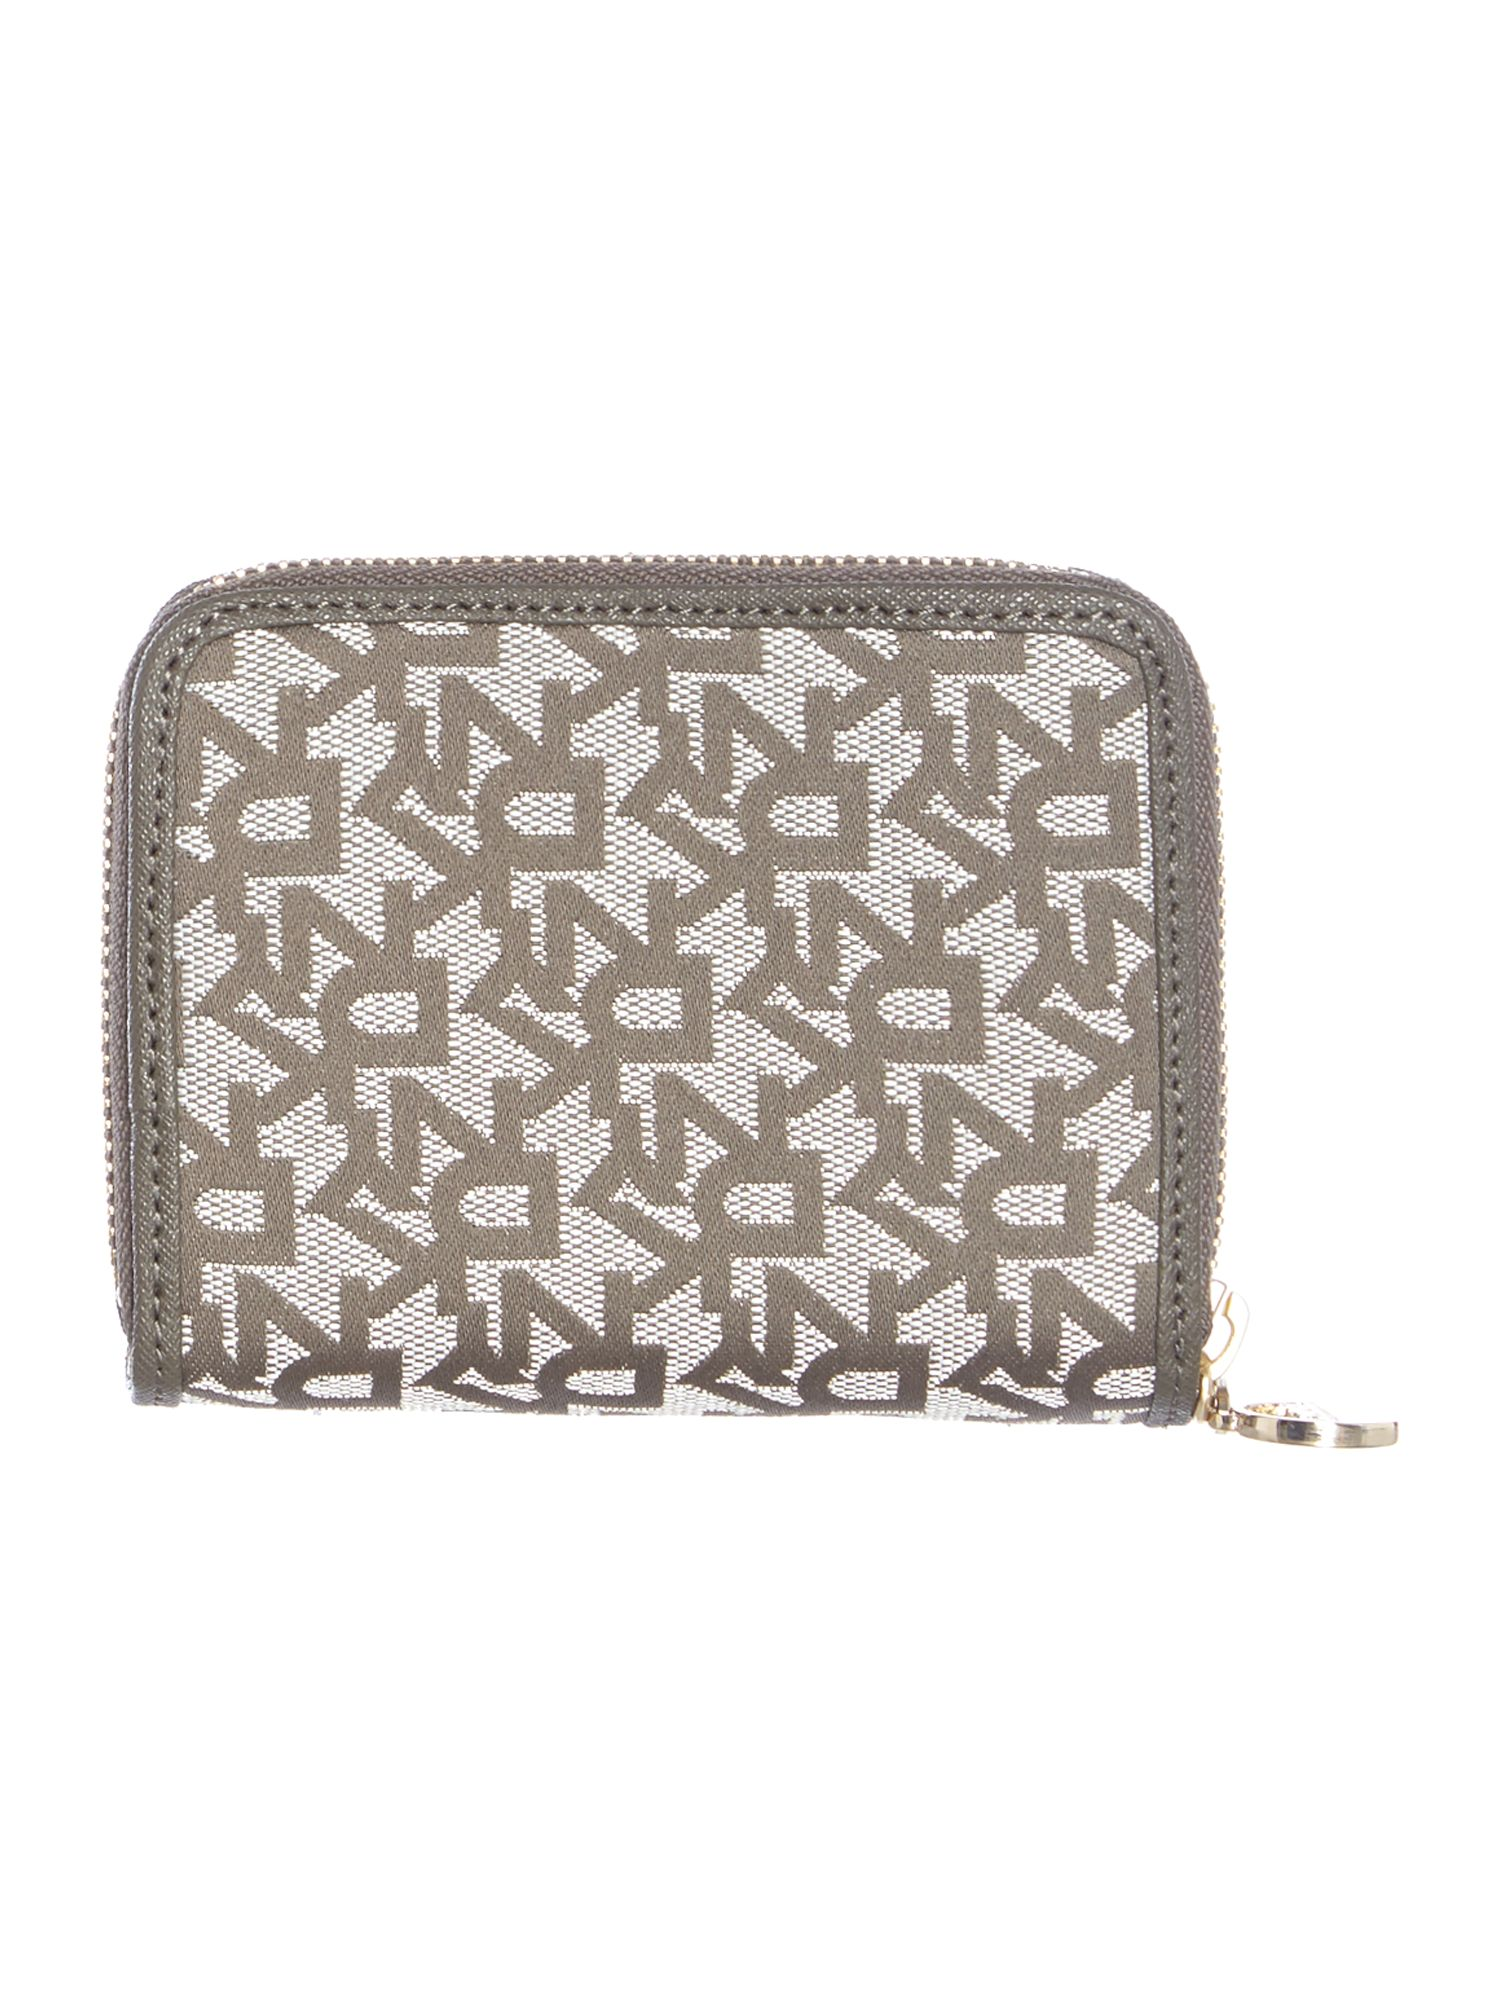 Saffiano grey small zip around purse